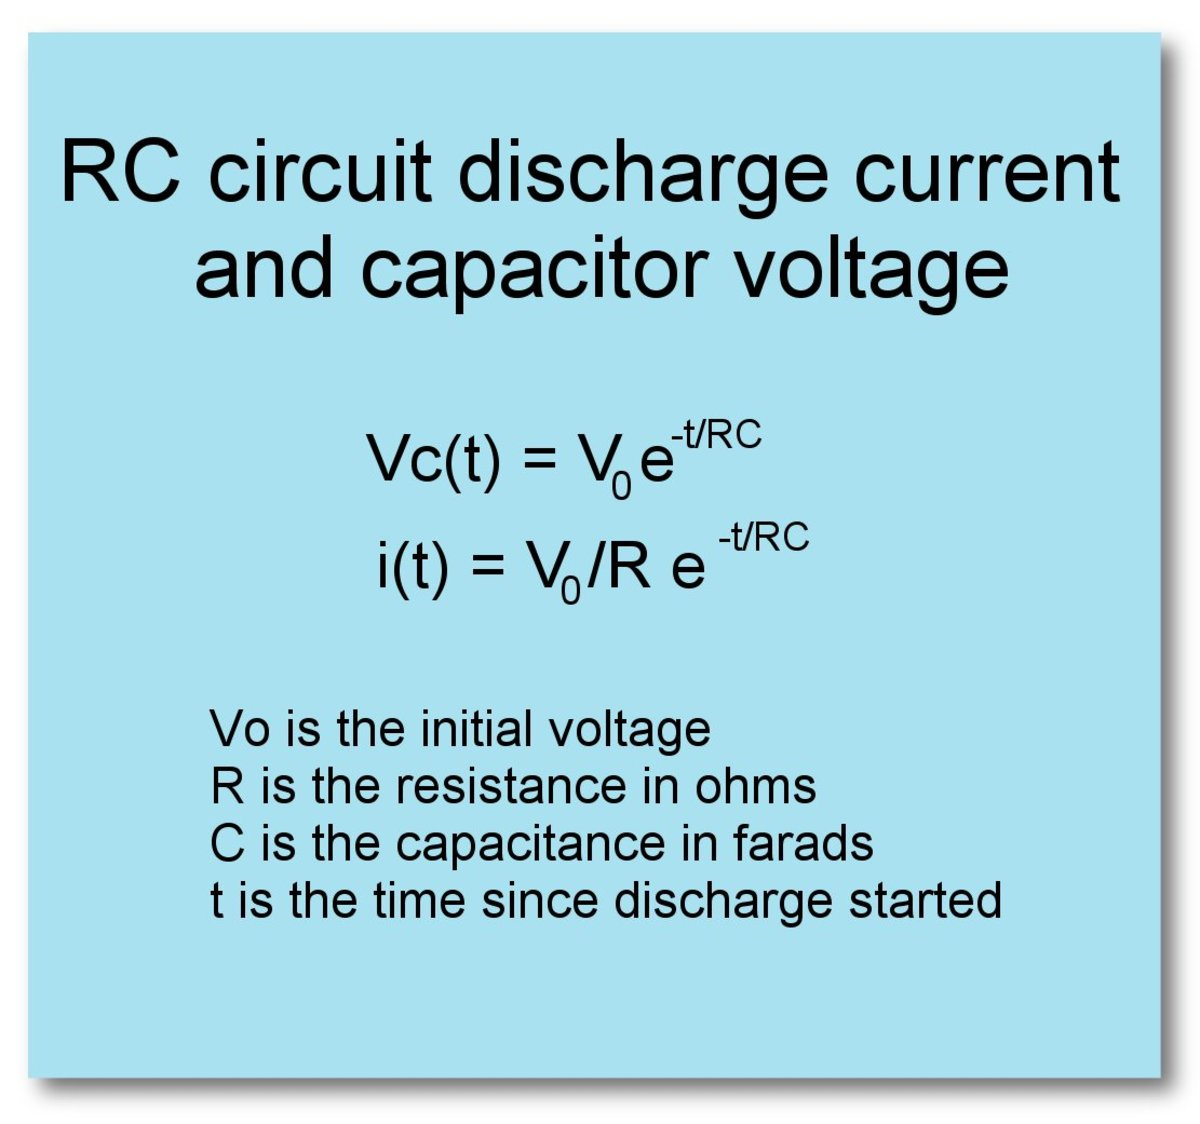 Equations for discharge current and voltage for an RC circuit.